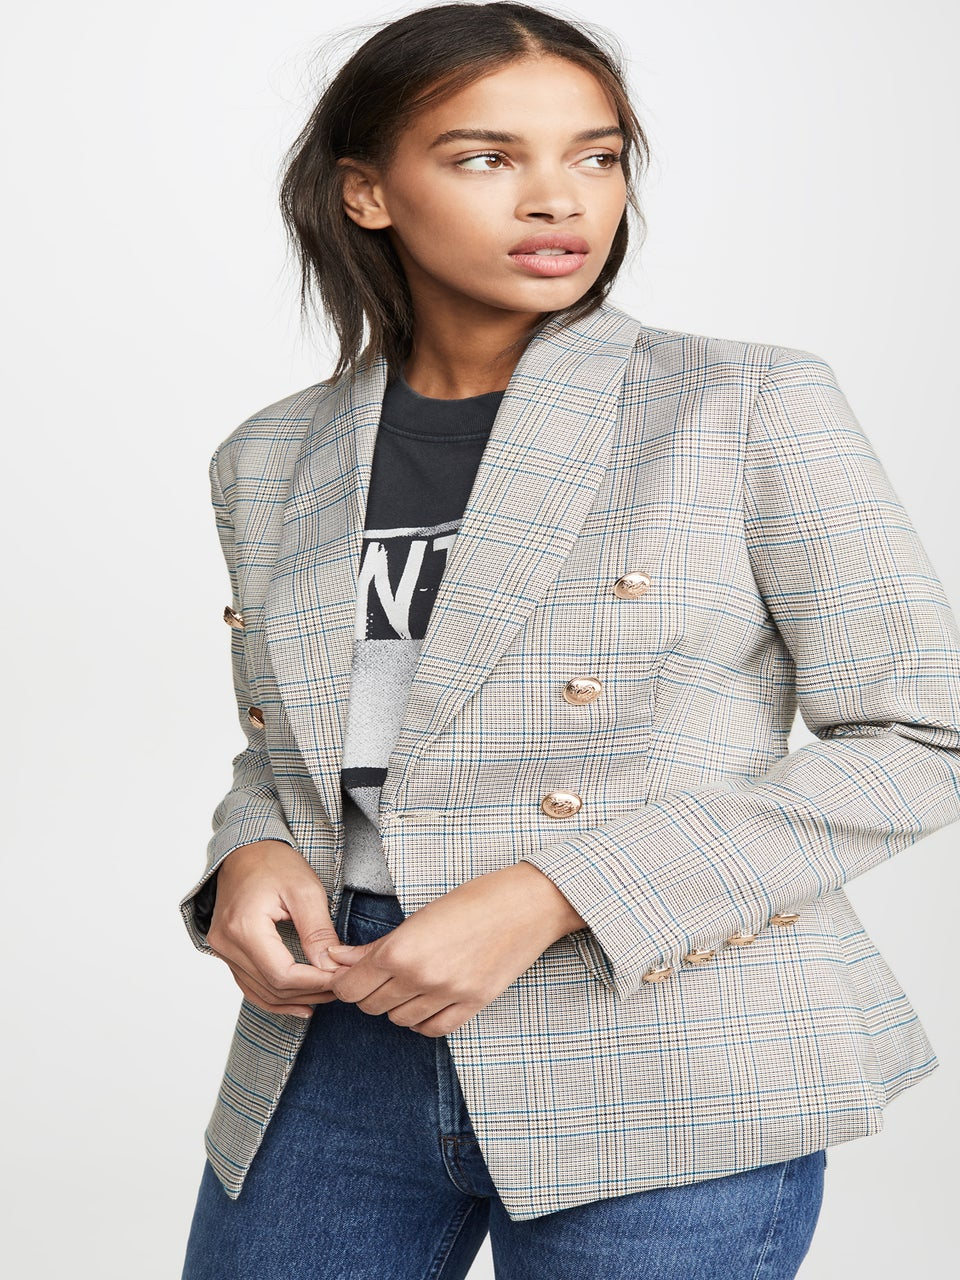 Grab a Super Chic Blazer To Complete Any Outfit This Season